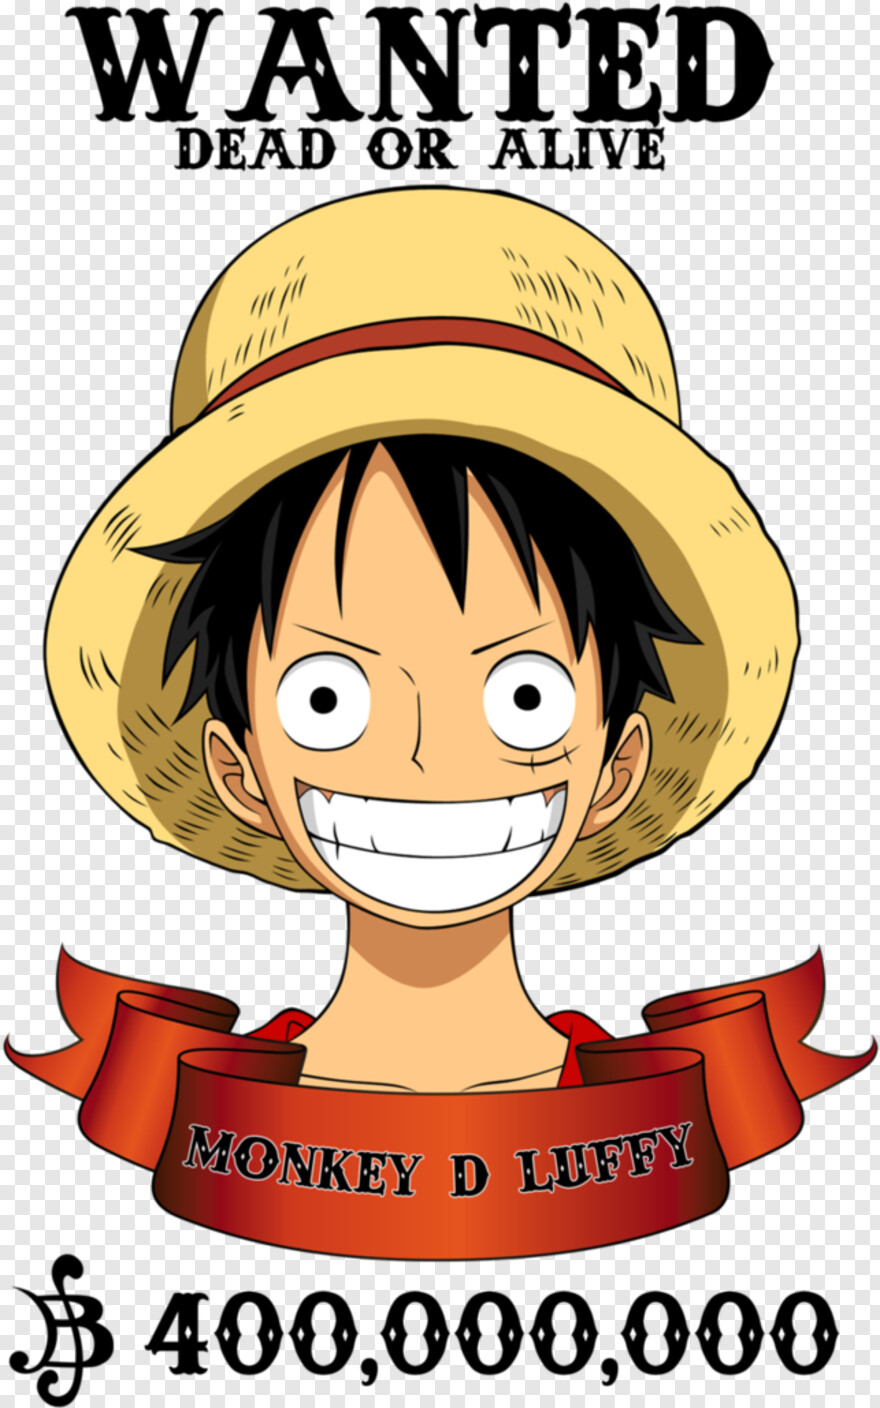 One Piece Logo Png Wanted Monkey D Luffy Png Download